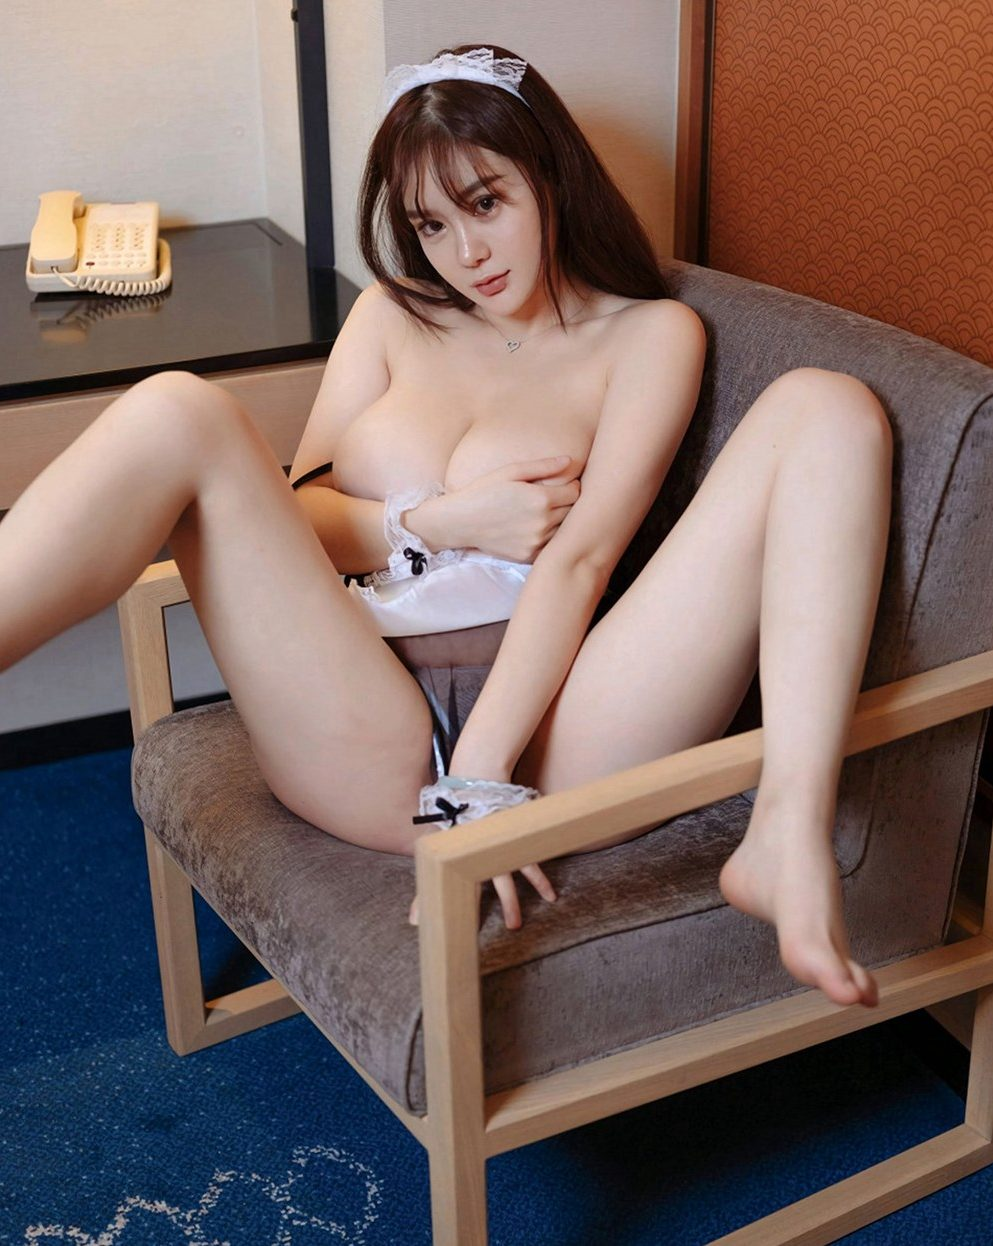 silvia busty babe hot asian girl sexy